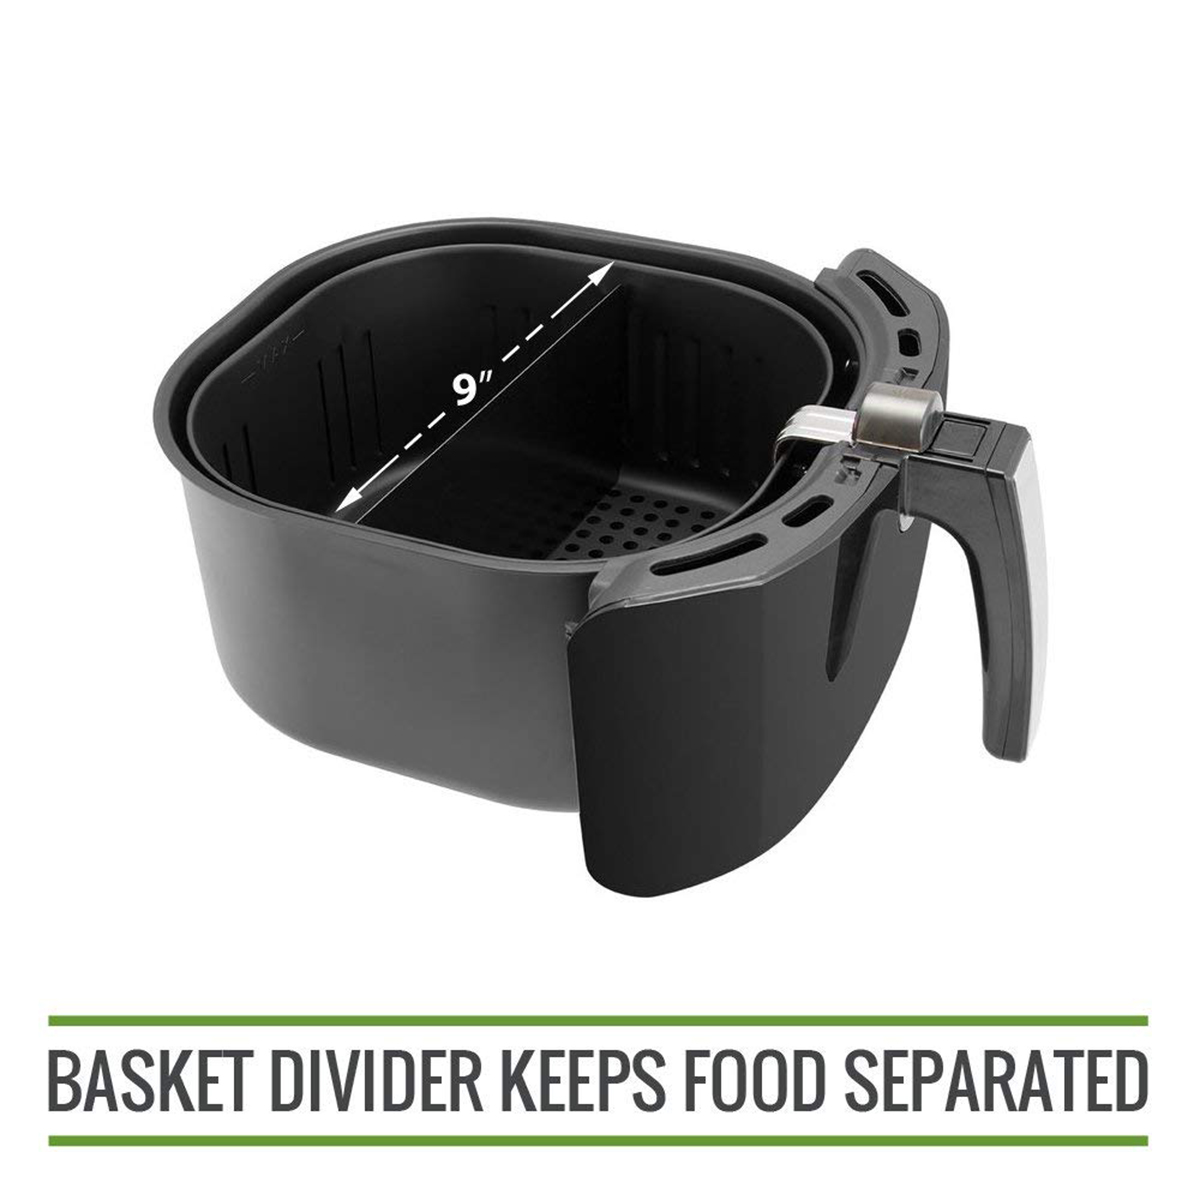 Best Sell XL Air Fryer Cooking Divider, Compatible With 9inch Air Fryer Baskets. Air Fryer Basket Divider Keeps Food Separated